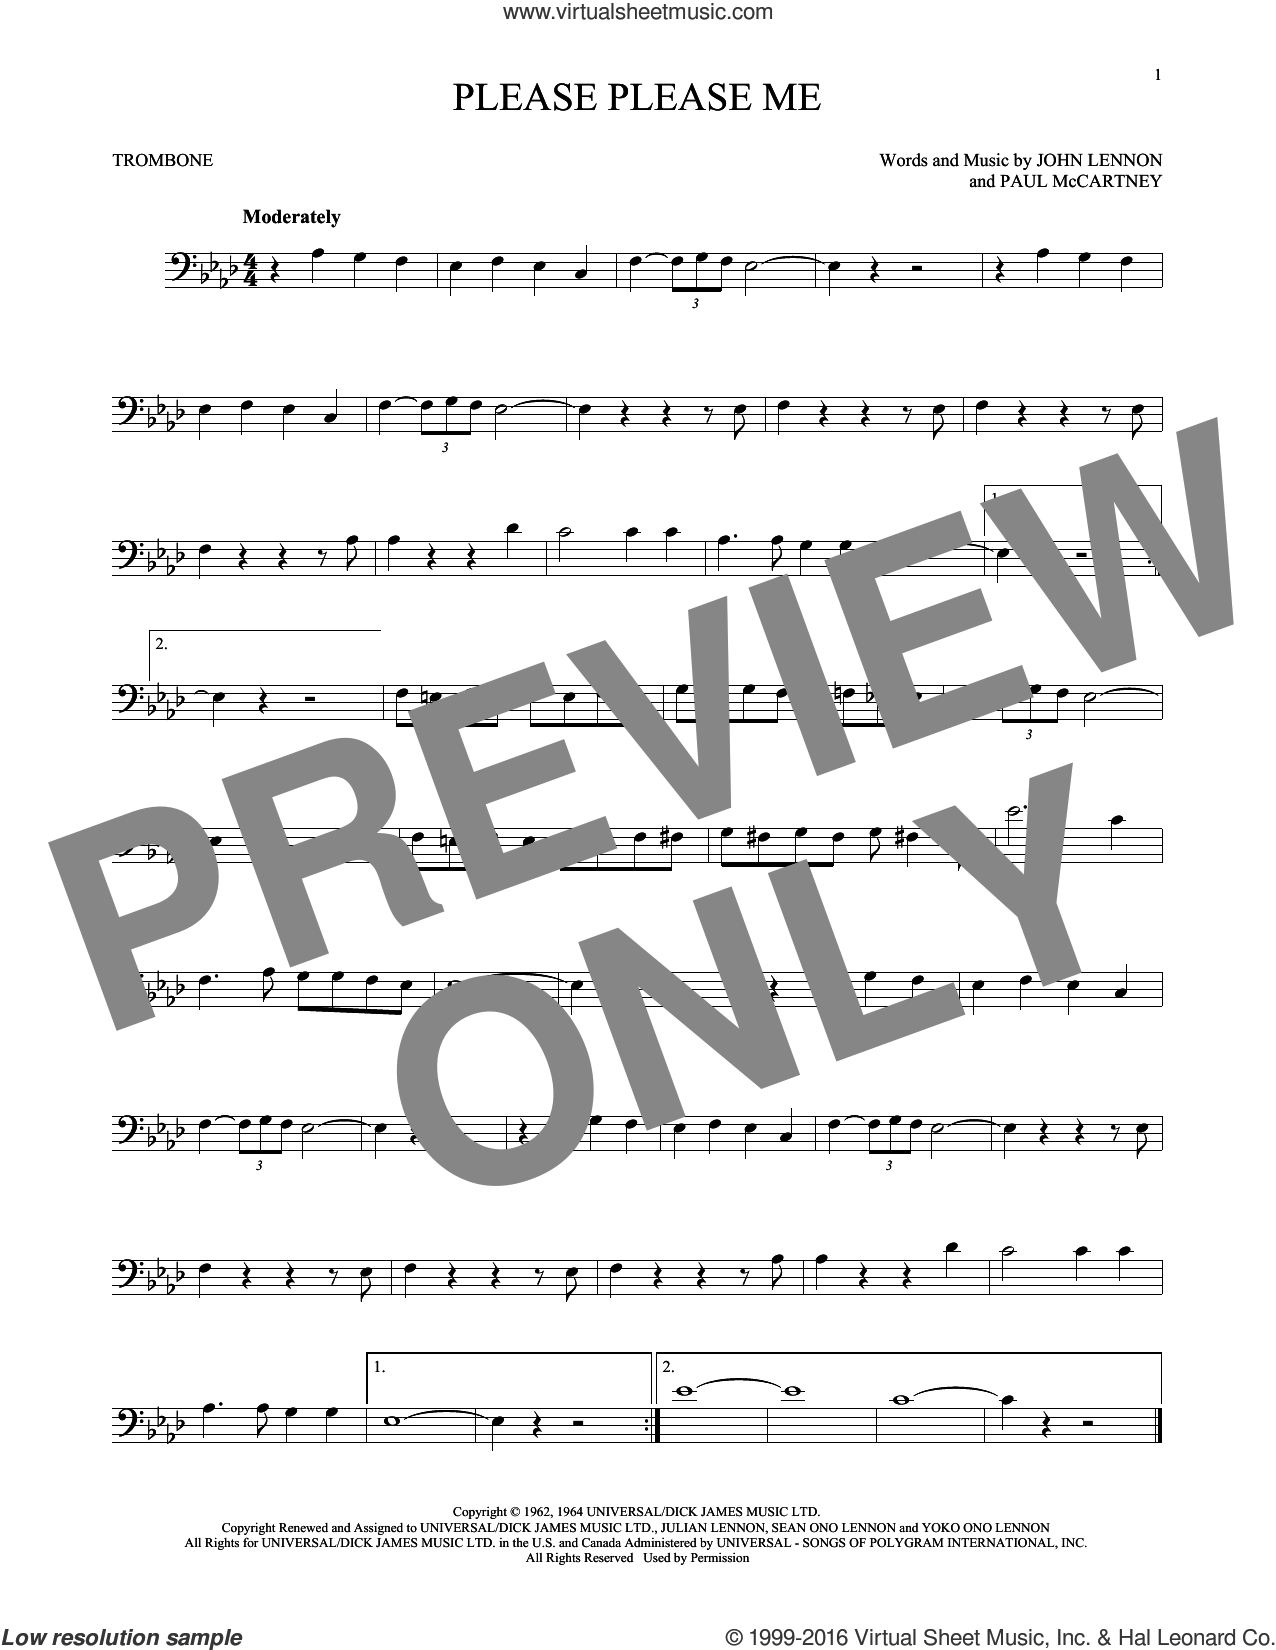 Please Please Me sheet music for trombone solo by The Beatles, John Lennon and Paul McCartney. Score Image Preview.